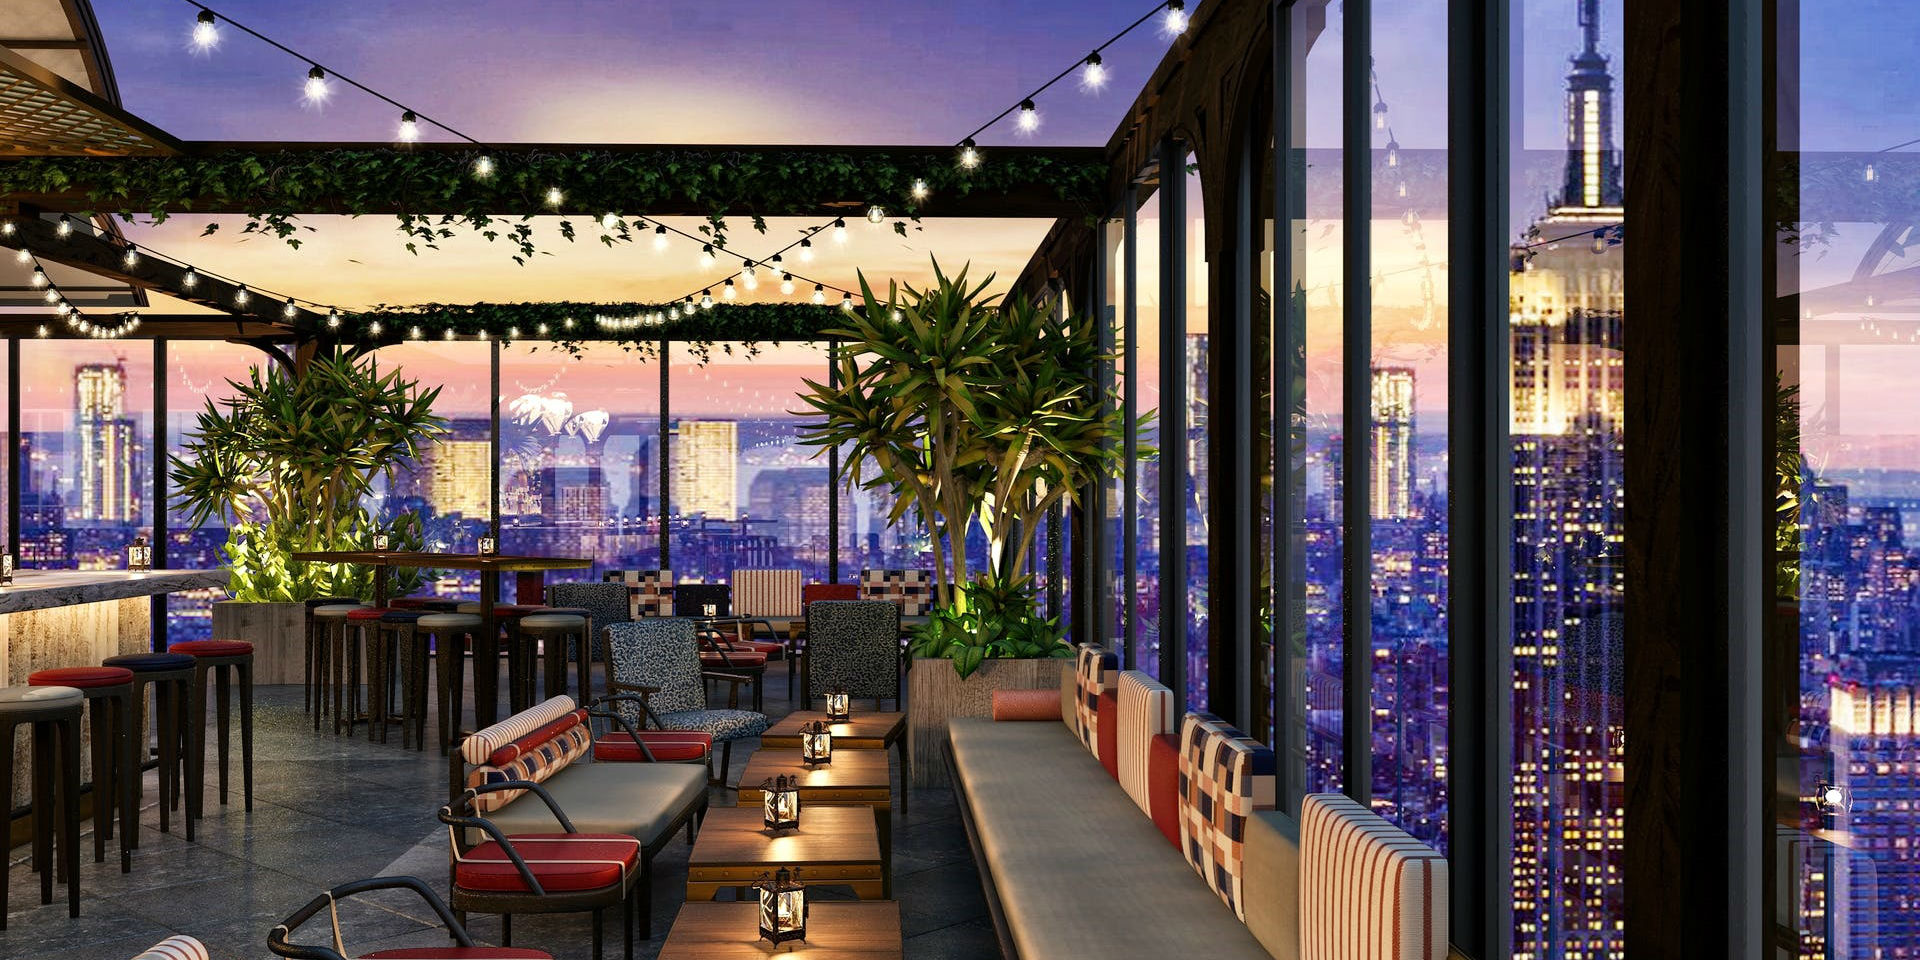 Moxy Hotels Continues Expanding Further Into The European Market This Move Builds On Brands Rapid Growth Since Its Inception In 2014